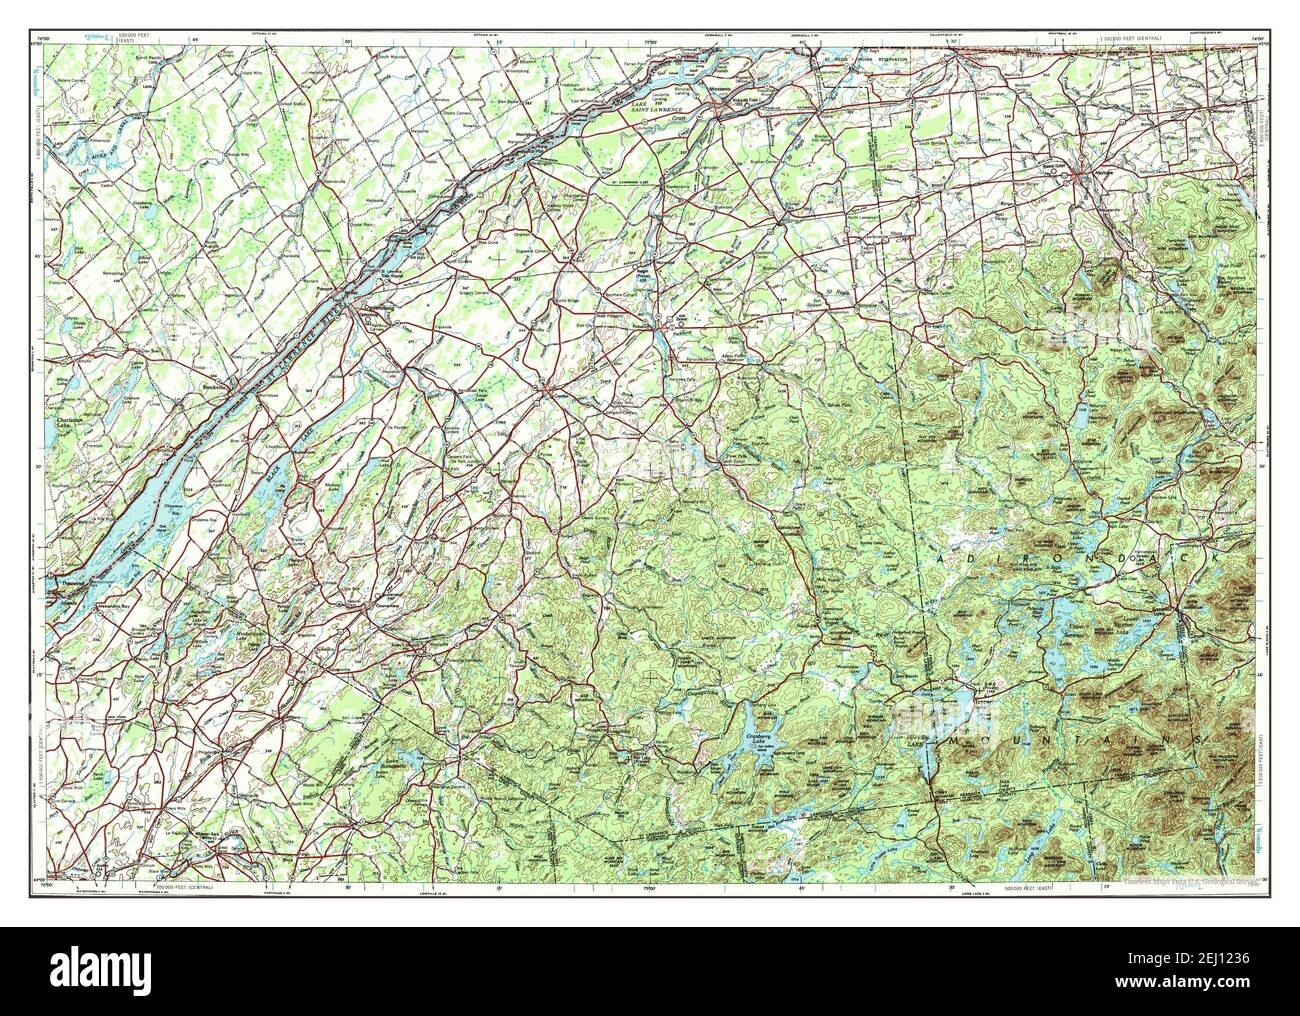 Ogdensburg, New York, map 1948, 1:250000, United States of America by Timeless Maps, data U.S. Geological Survey Stock Photo